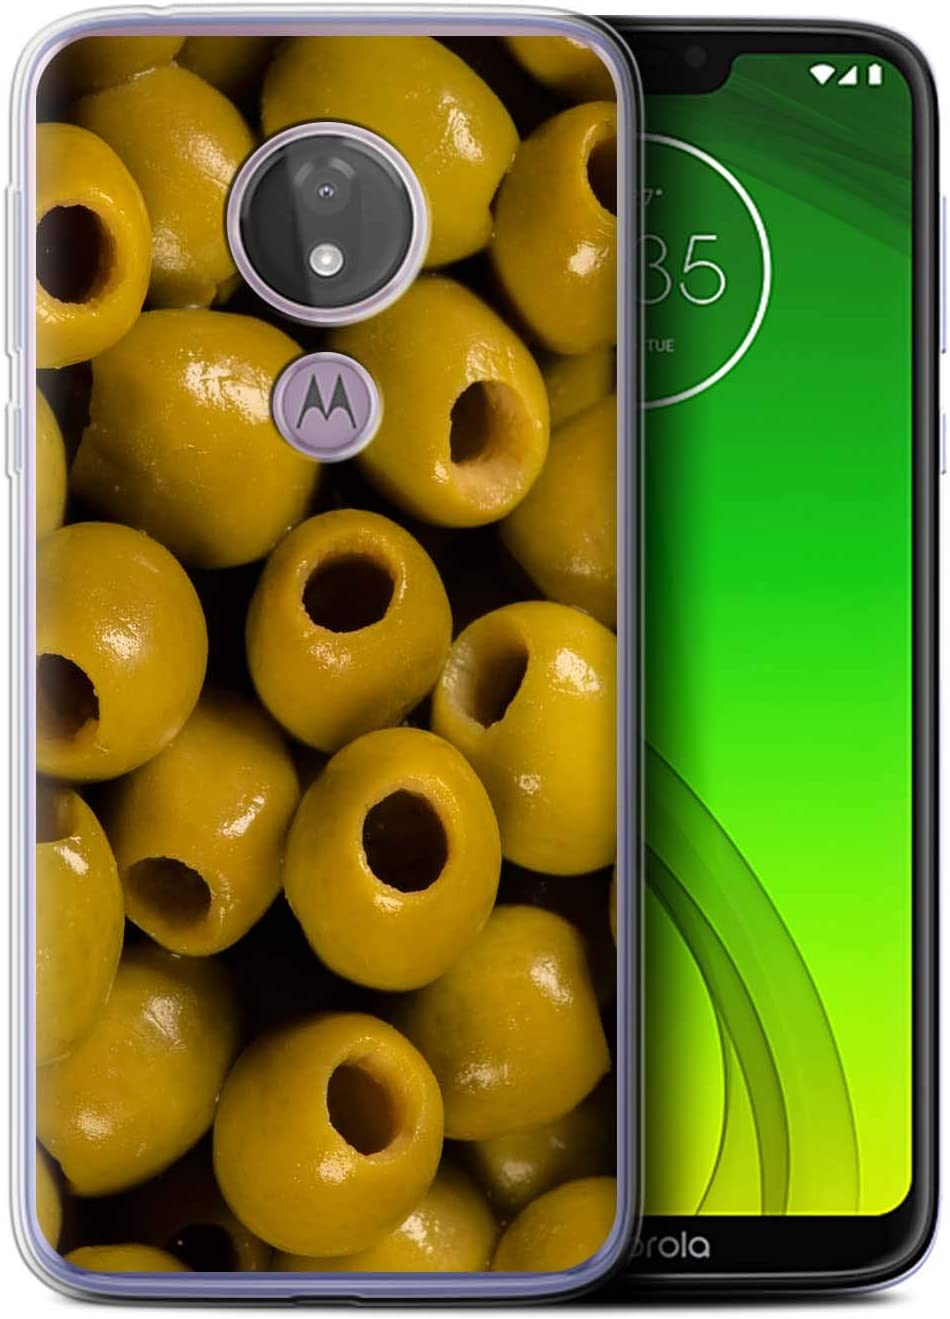 Phone Case for Motorola Moto G7 Power Food Olives Design Transparent Clear Ultra Soft Flexi Silicone Gel/TPU Bumper Cover